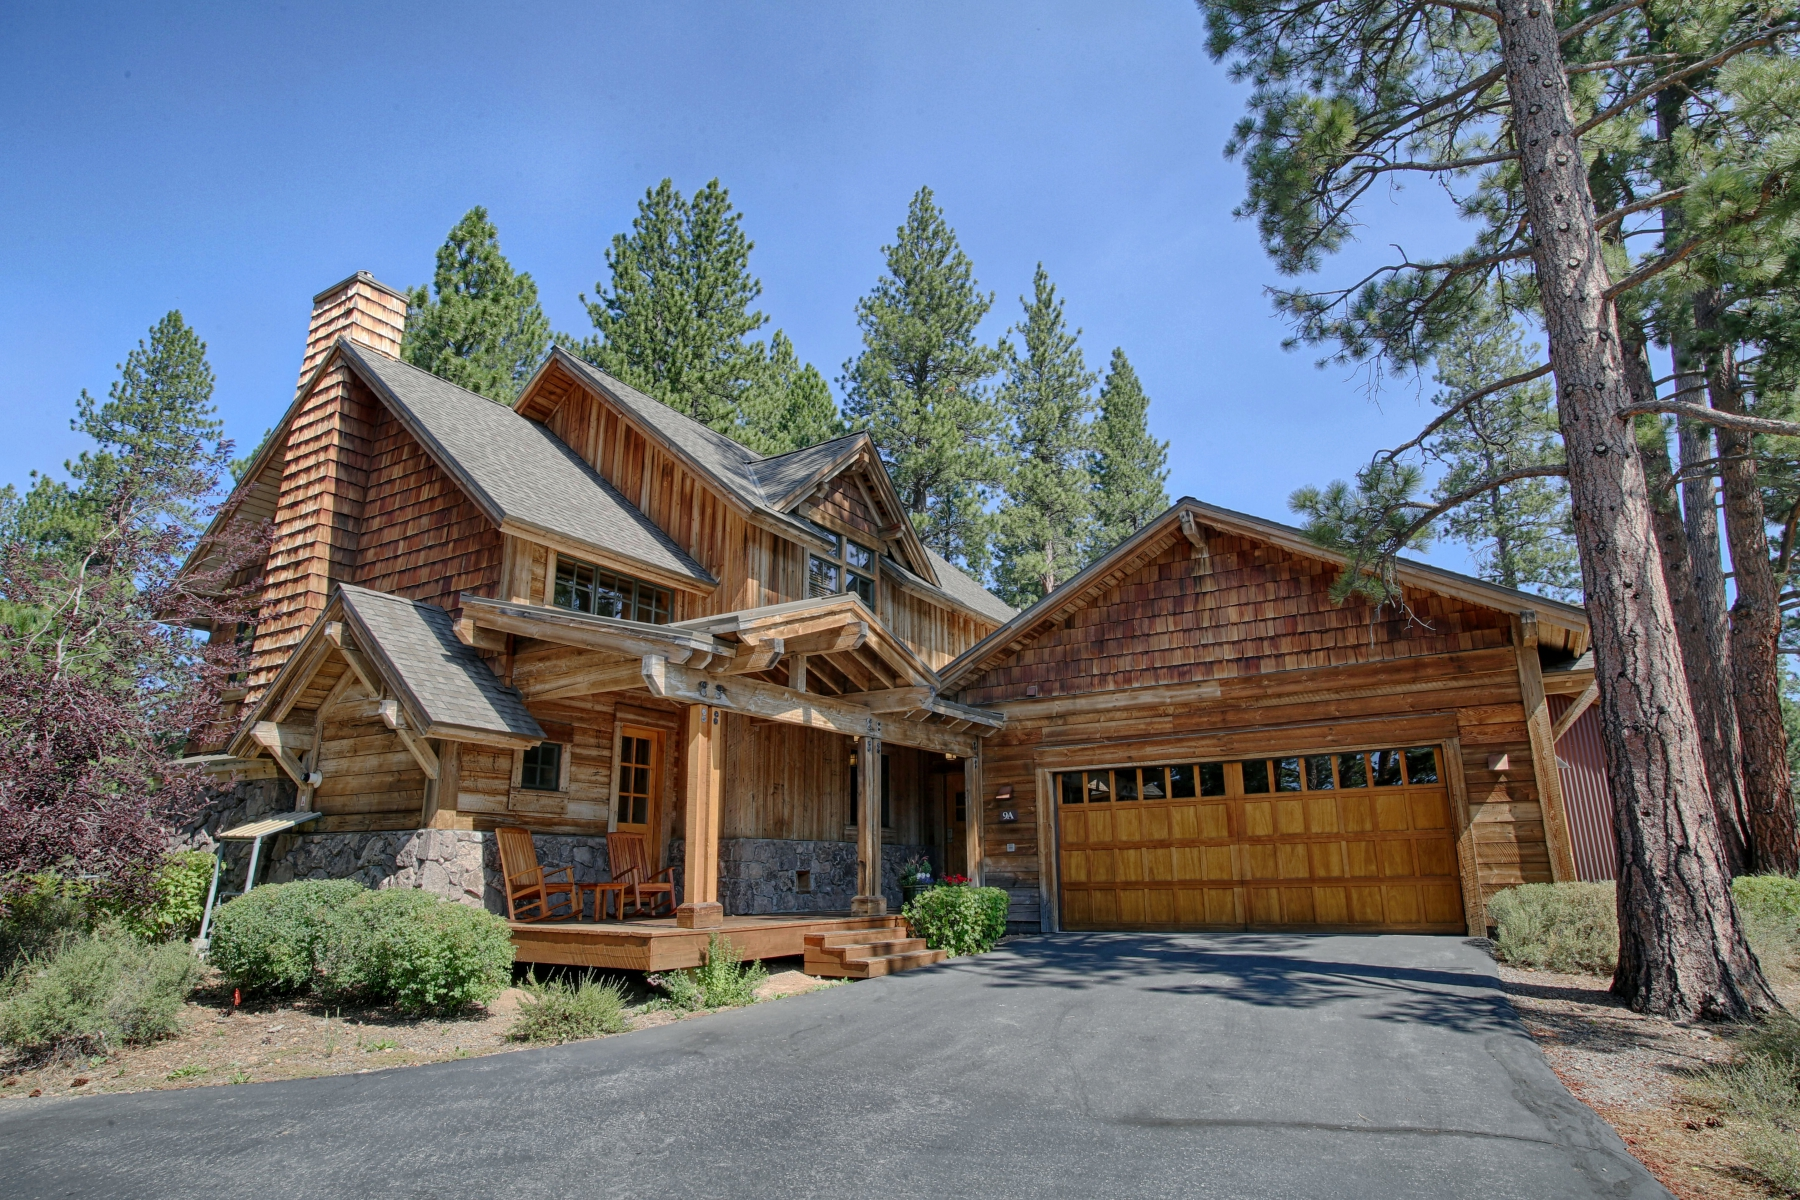 Additional photo for property listing at 12601 Legacy Court, A11A-32 12601 Legacy Court A11A-32 Truckee, California 96161 Estados Unidos